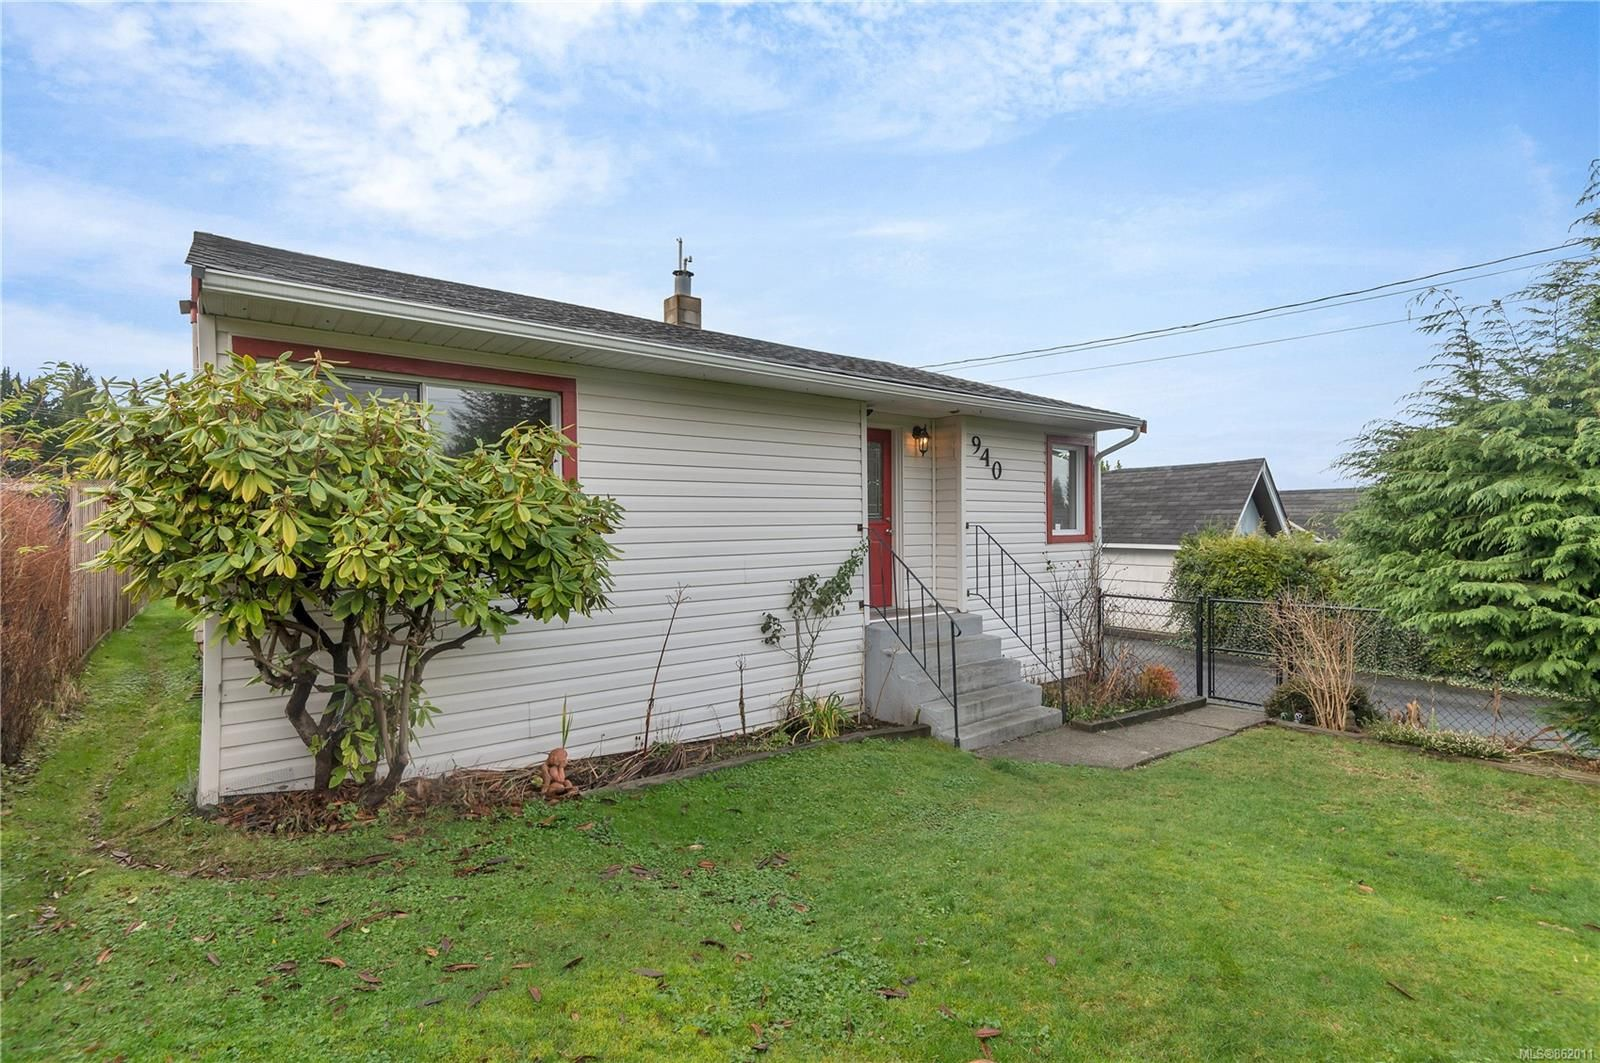 Main Photo: 940 Fir St in : CR Campbell River Central House for sale (Campbell River)  : MLS®# 862011